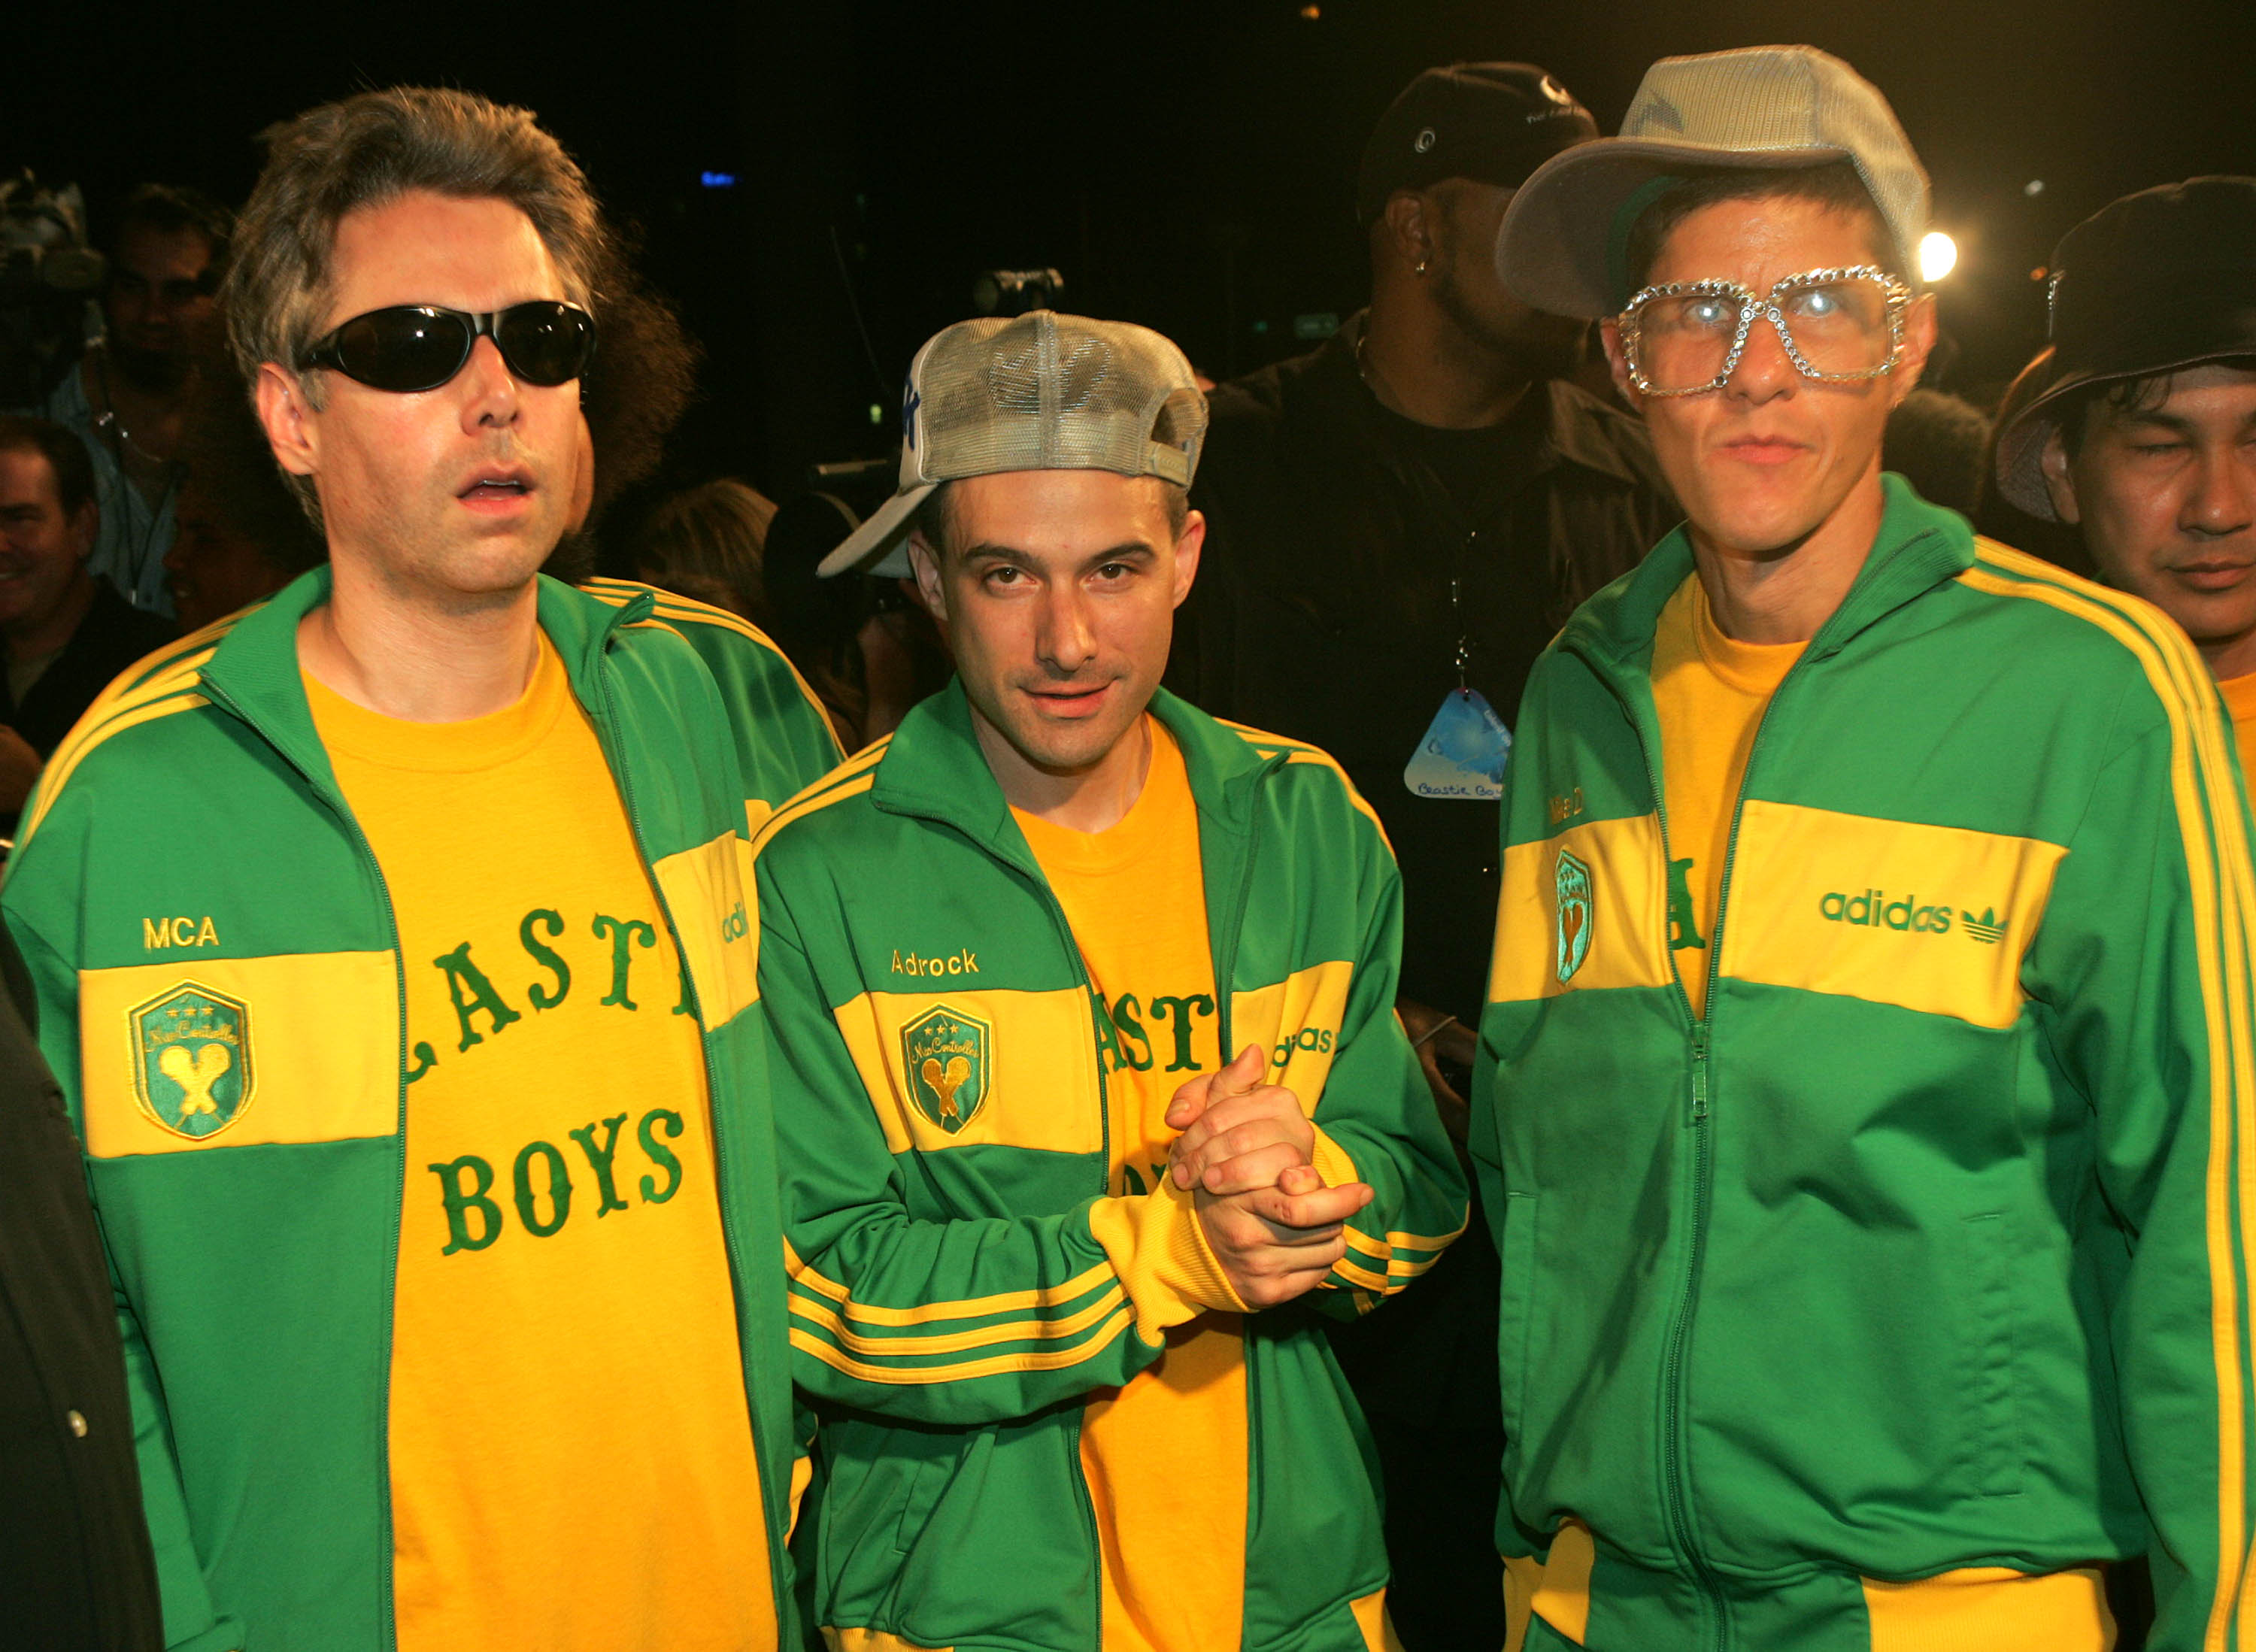 Music video by The Beastie Boys performing Body Movin C 2009 Capitol Records LLC